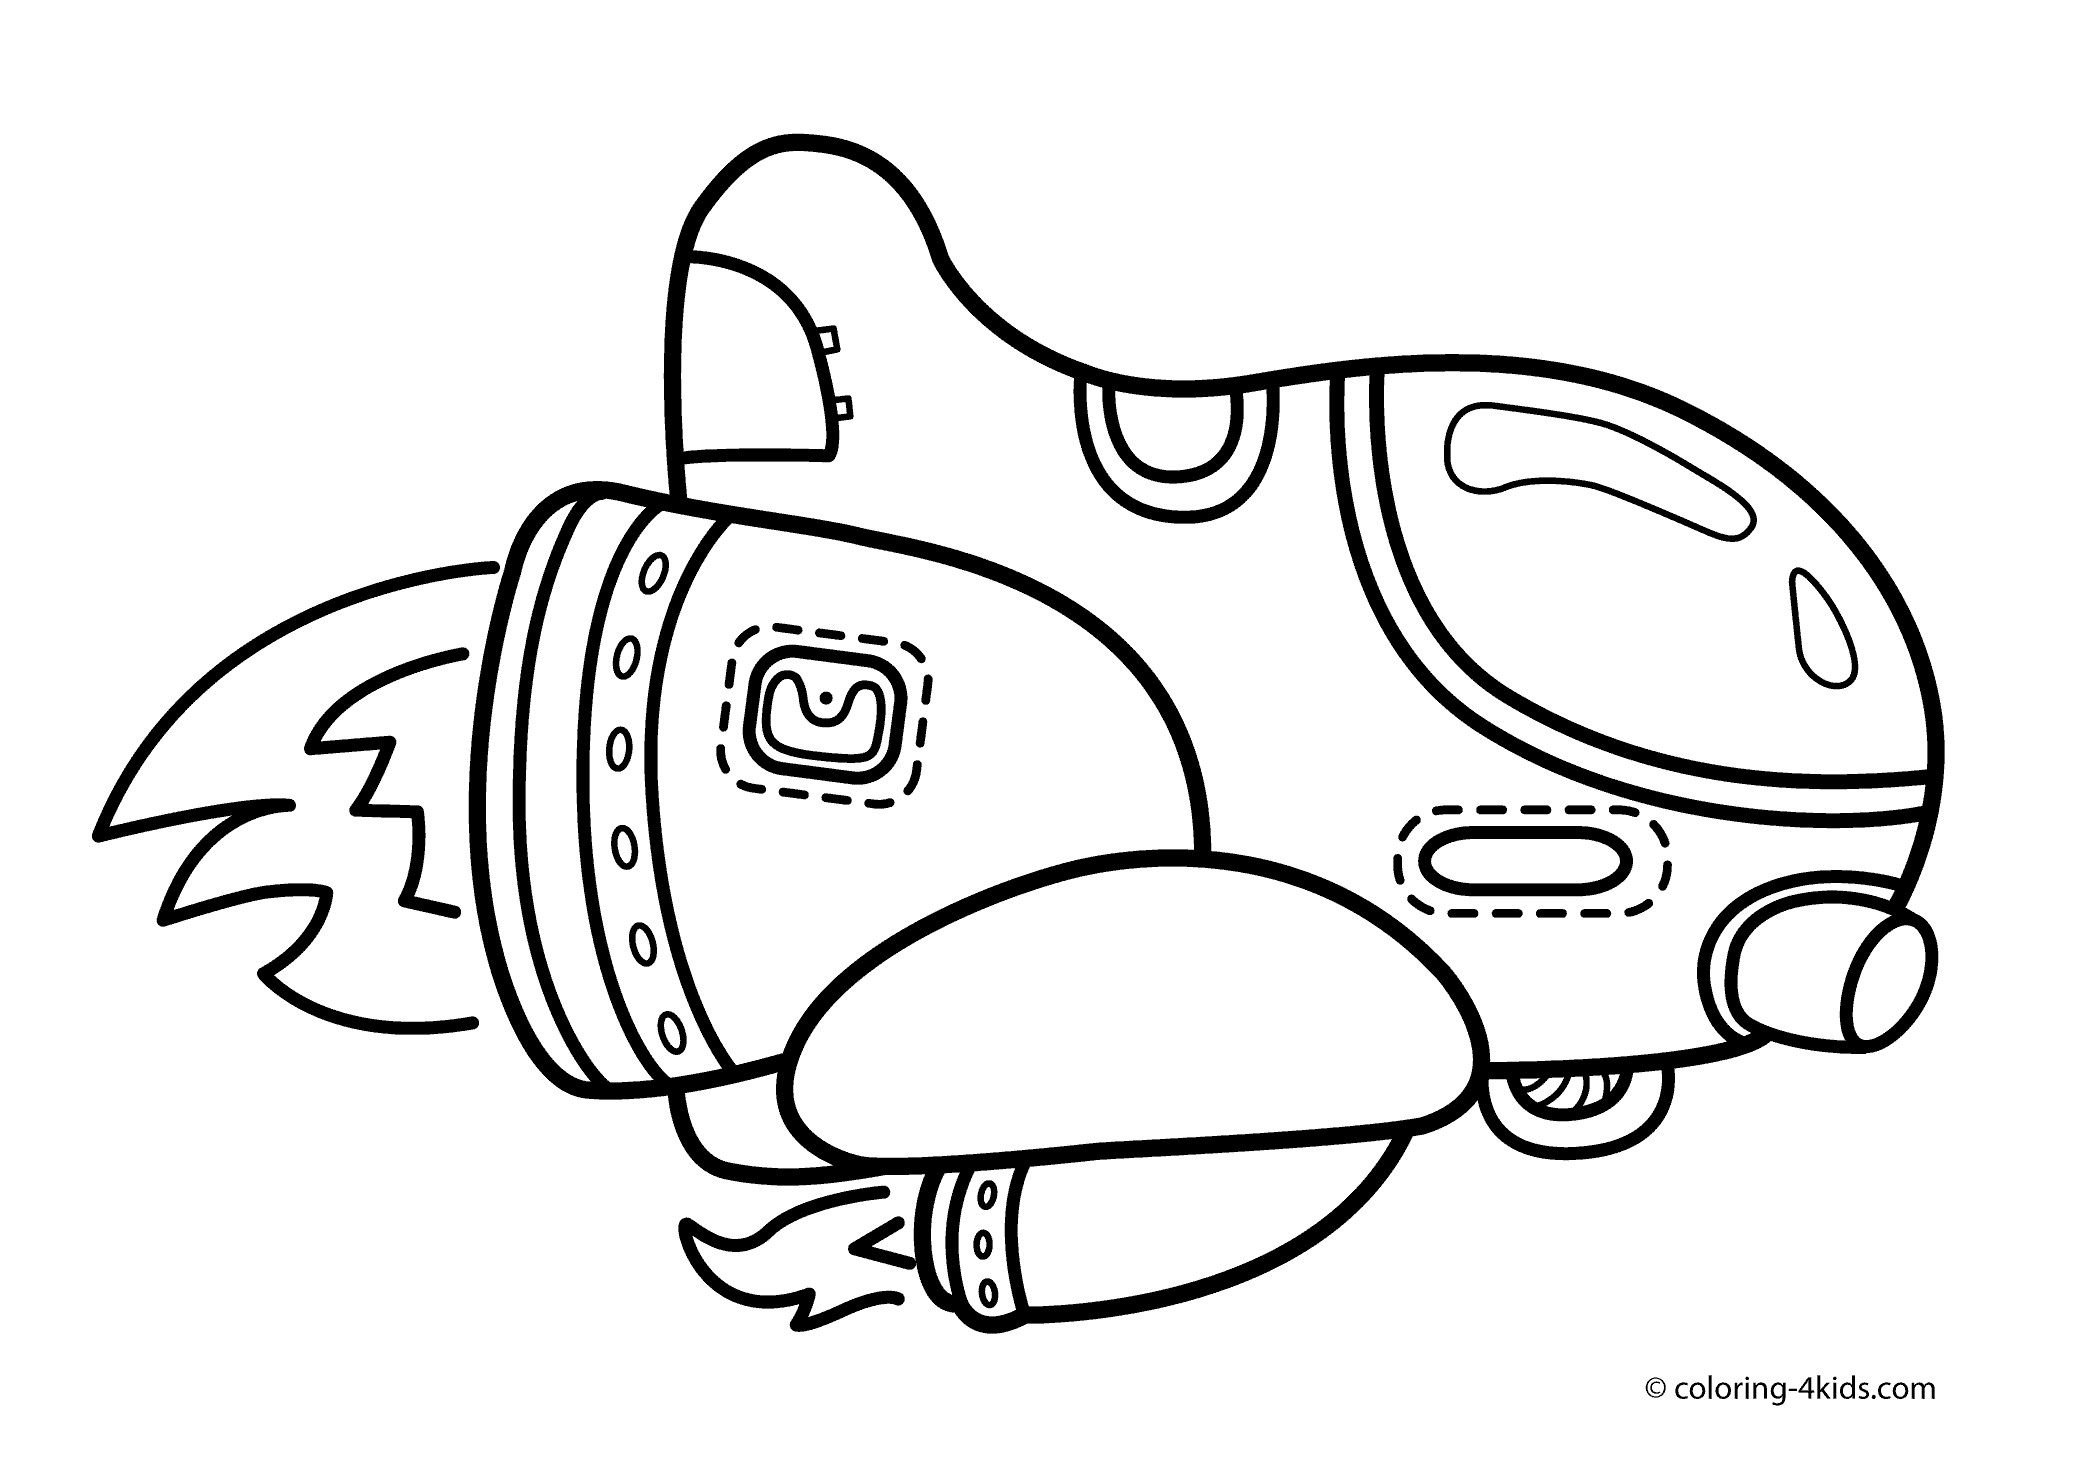 2079x1483 Fresh Simplerocket Ship Coloring Pages Design Free Coloring Pages